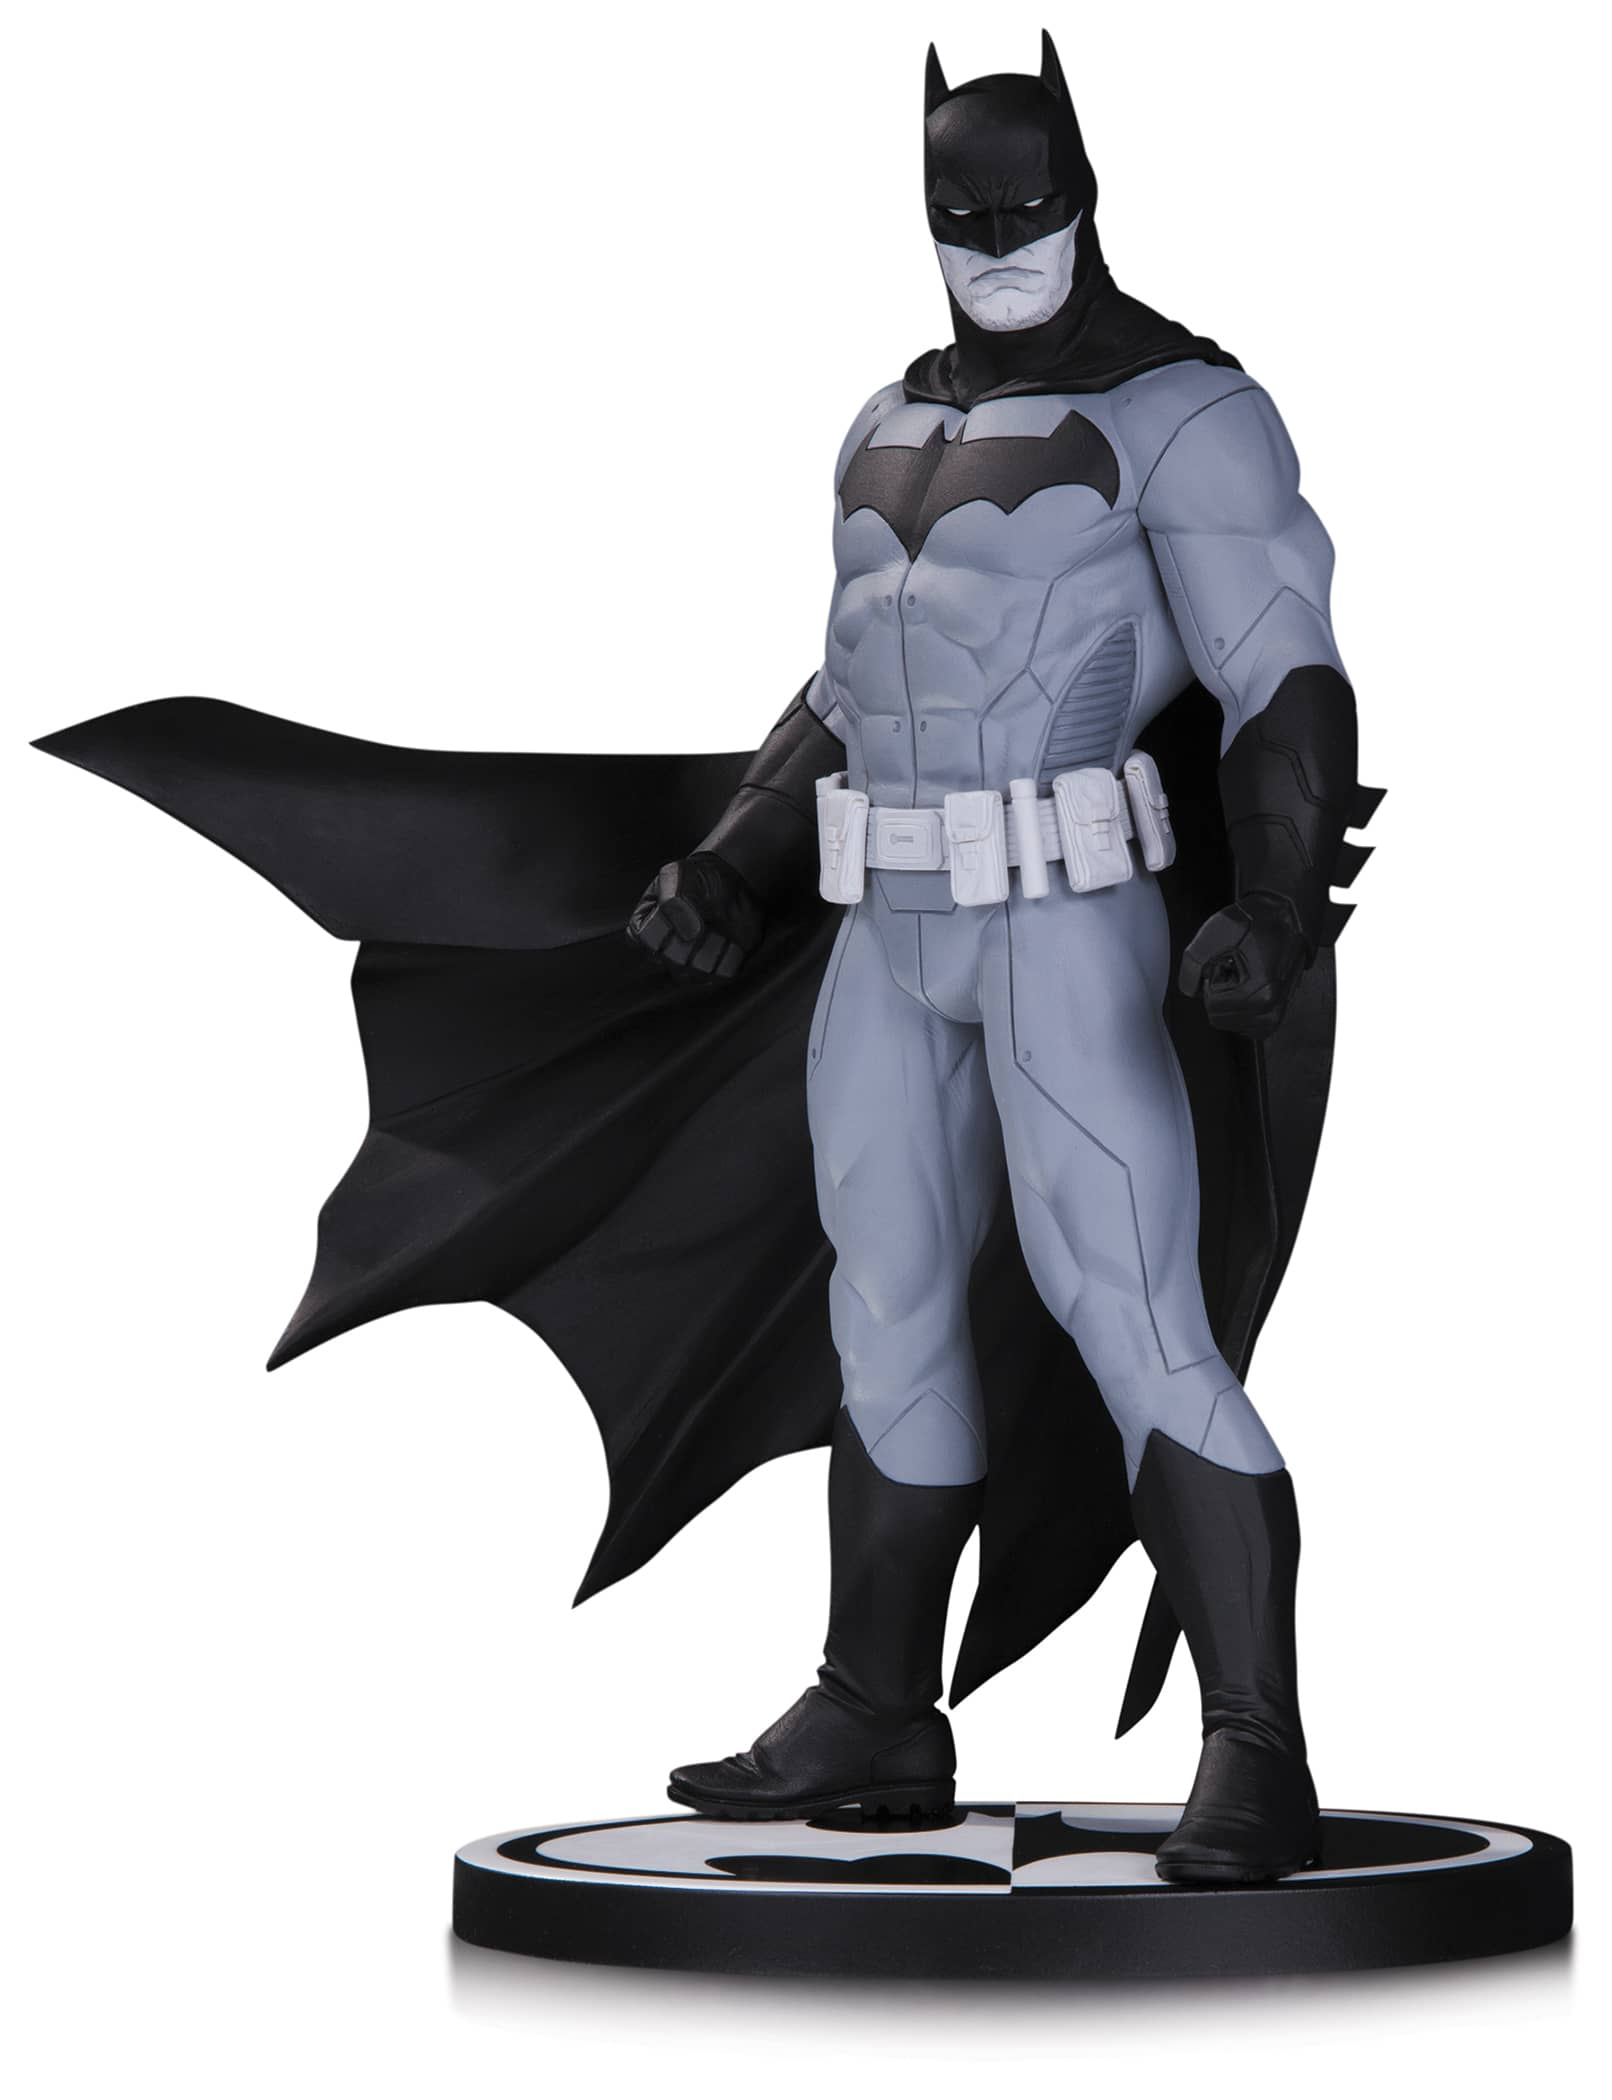 BATMAN B&W BLACK AND WHITE BY JASON FABOK ESTATUA 18 CM BATMAN UNIVERSO DC